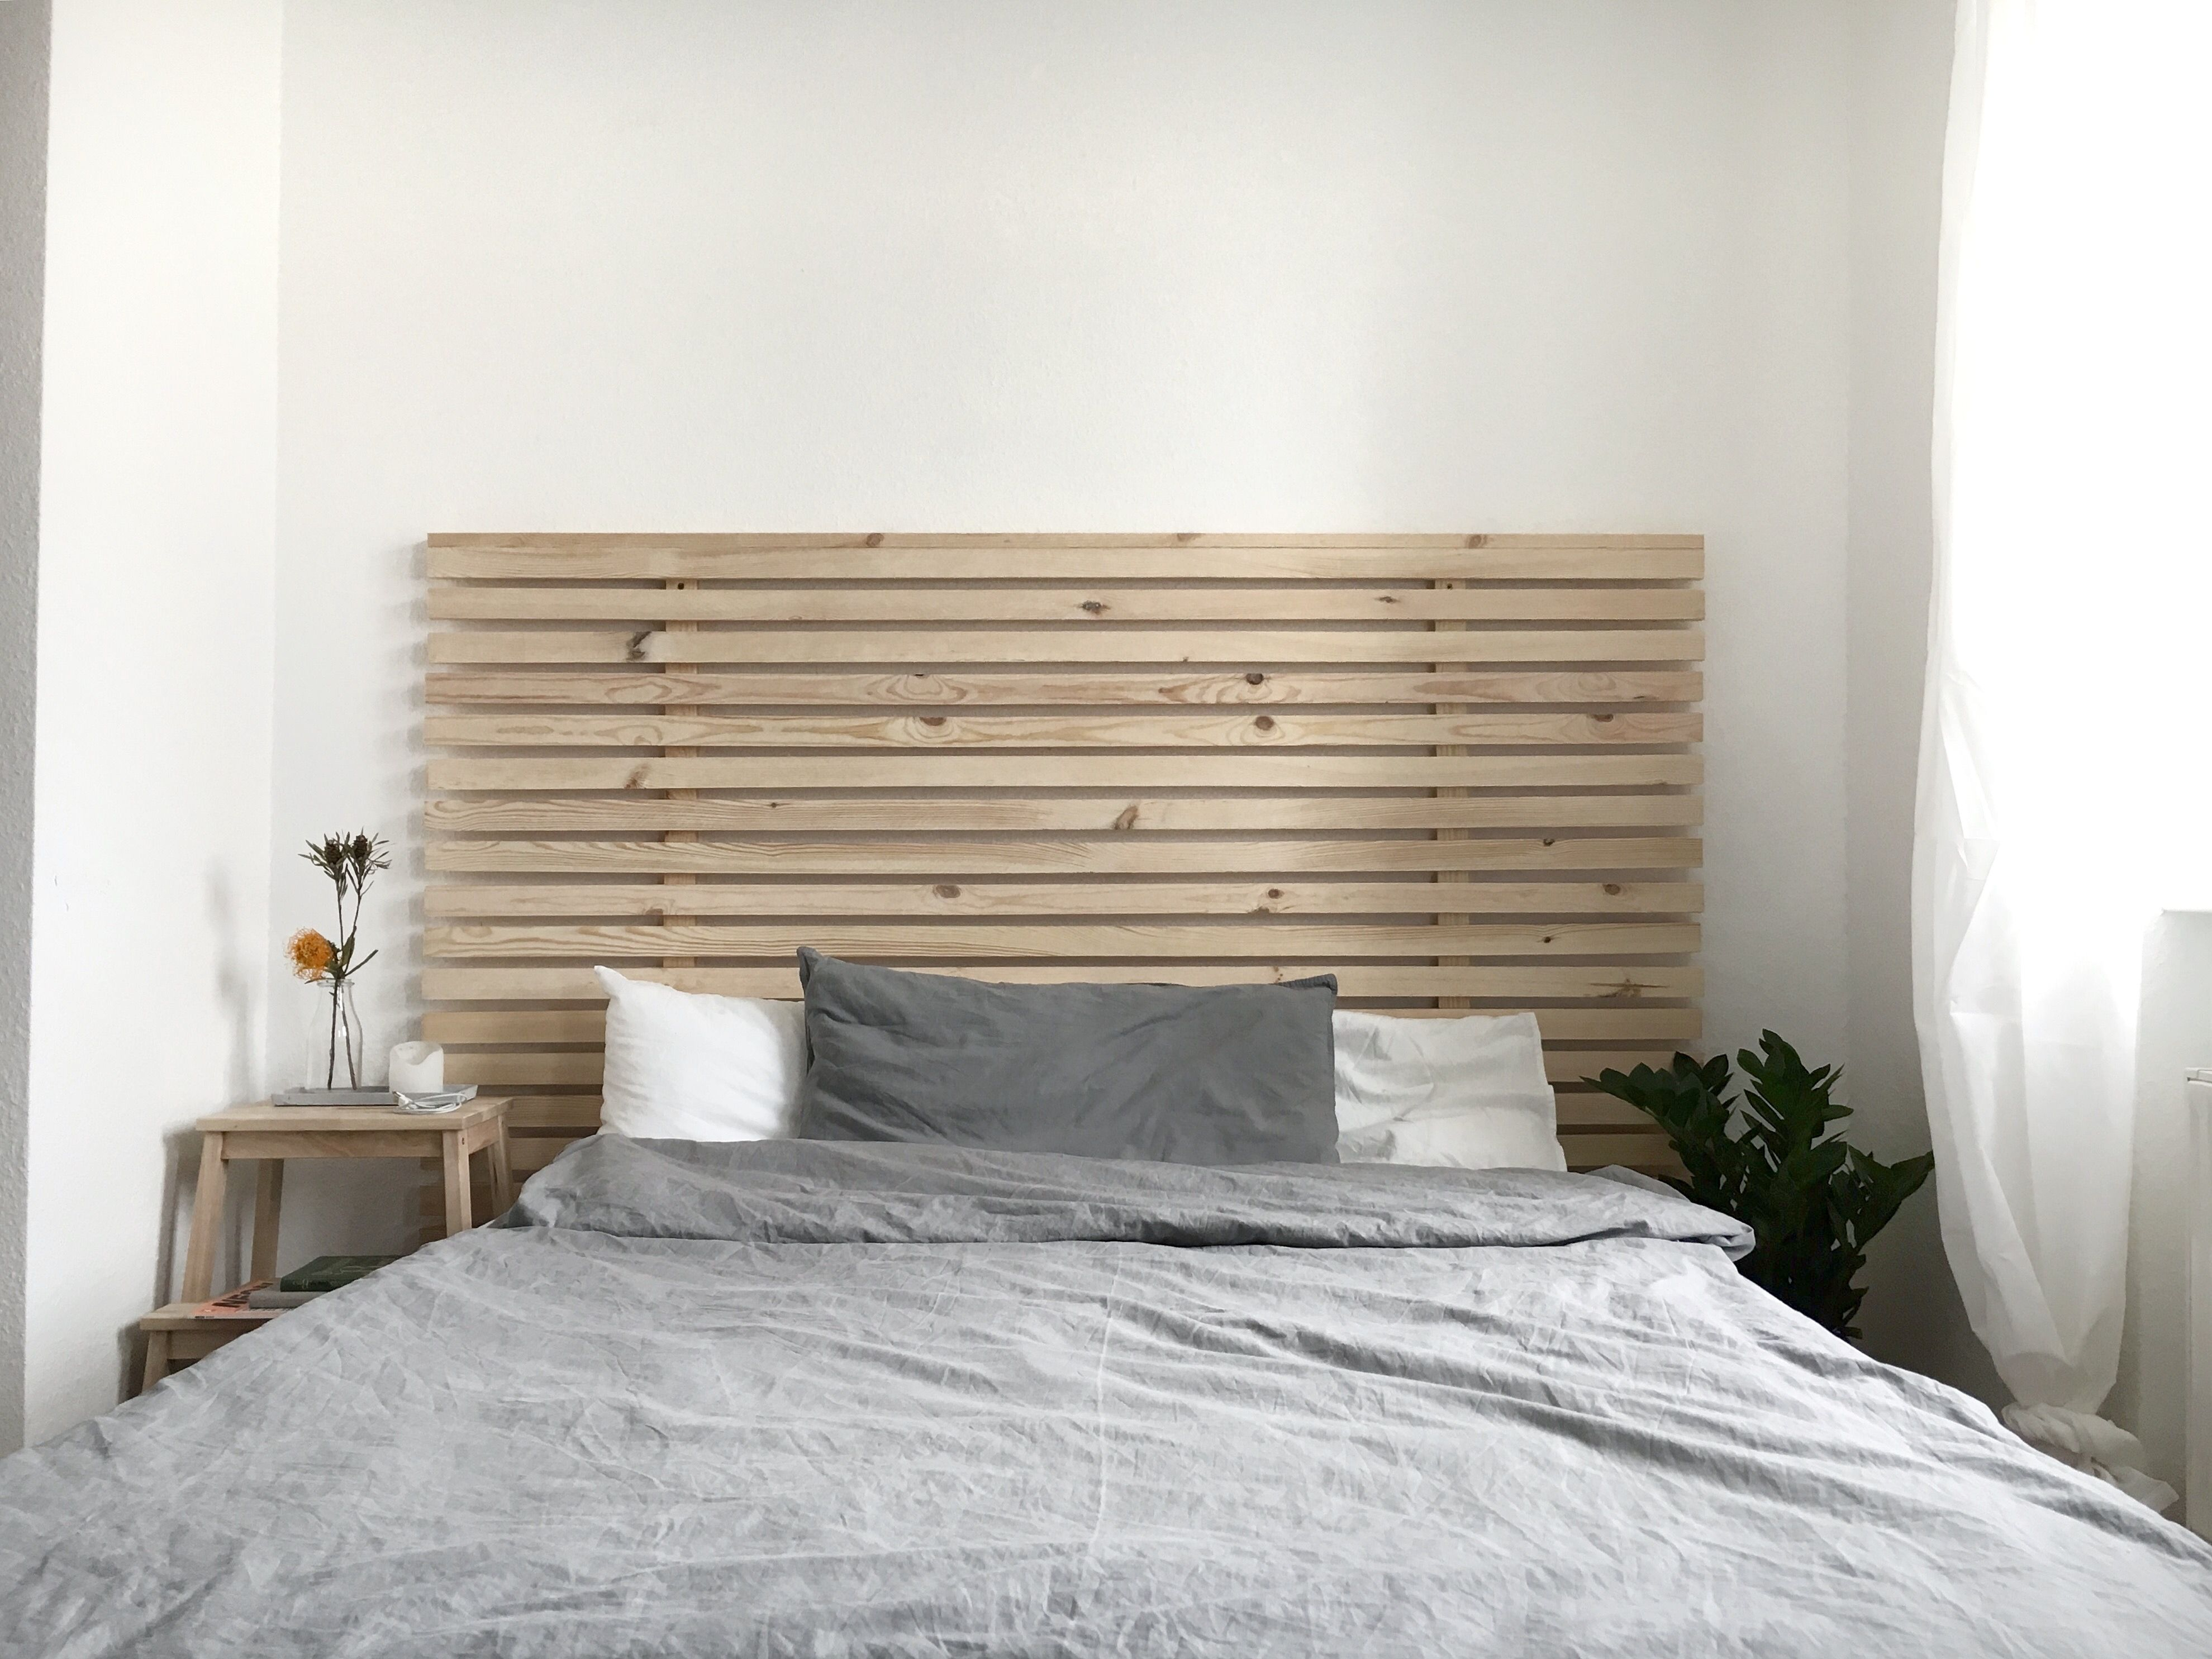 Pin By Genevieve Varnell On House In 2019 Diy Bed